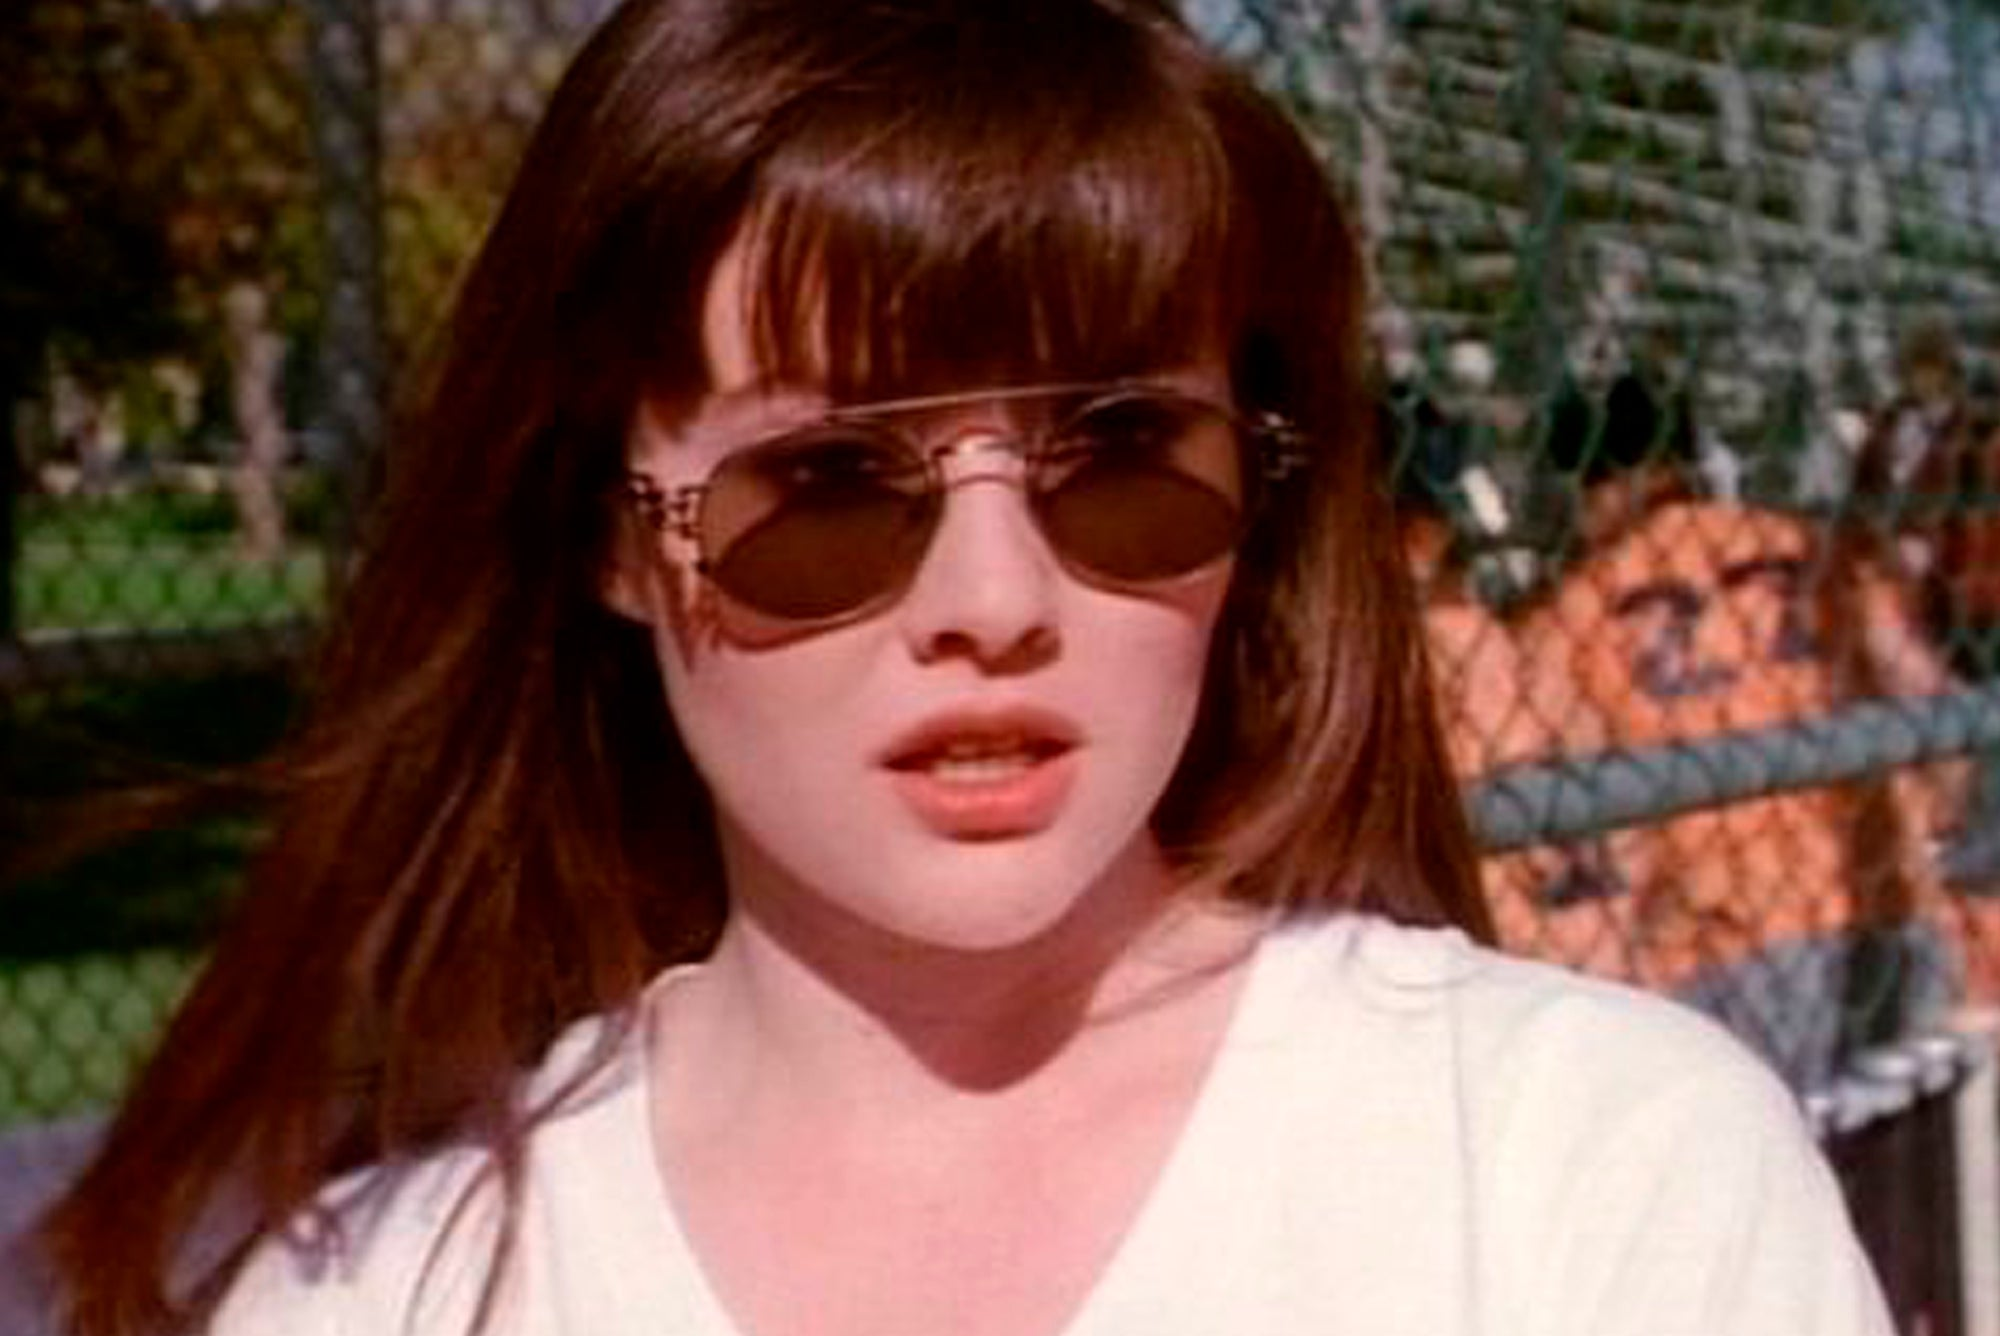 Shannon Doherty of Beverly Hills 90210 wearing sunglasses